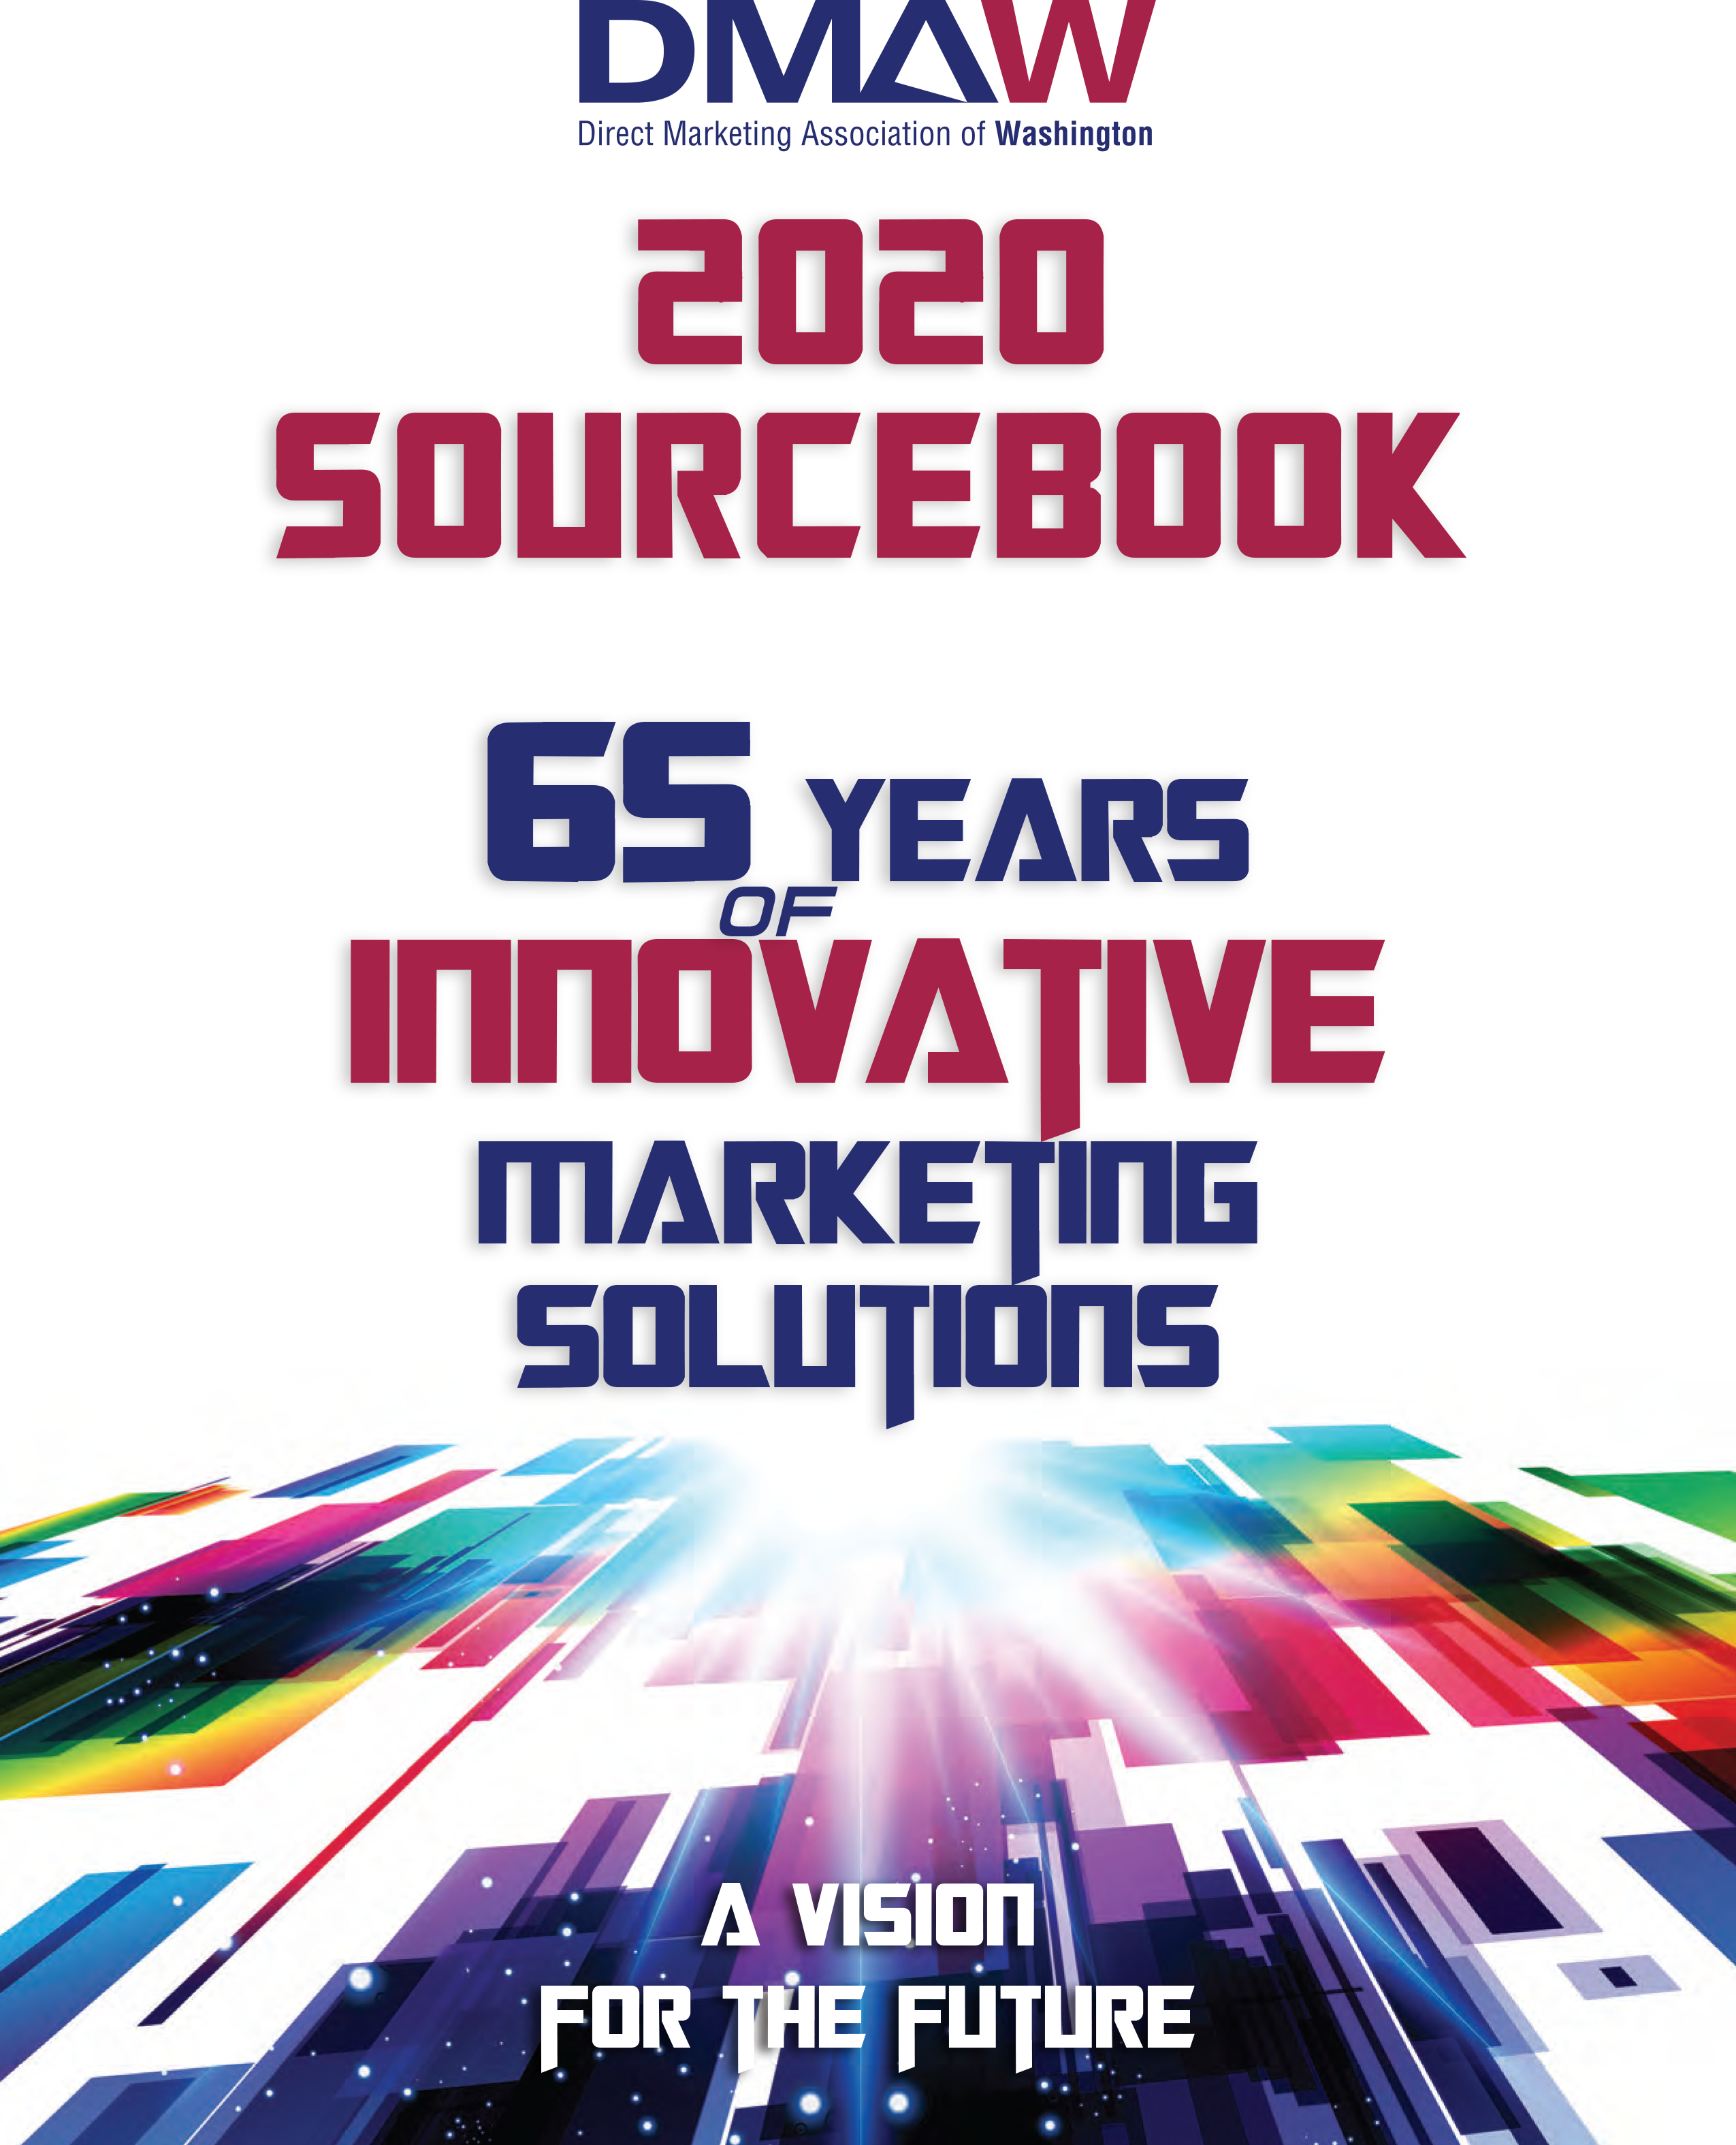 Sourcebook 2020 Cover